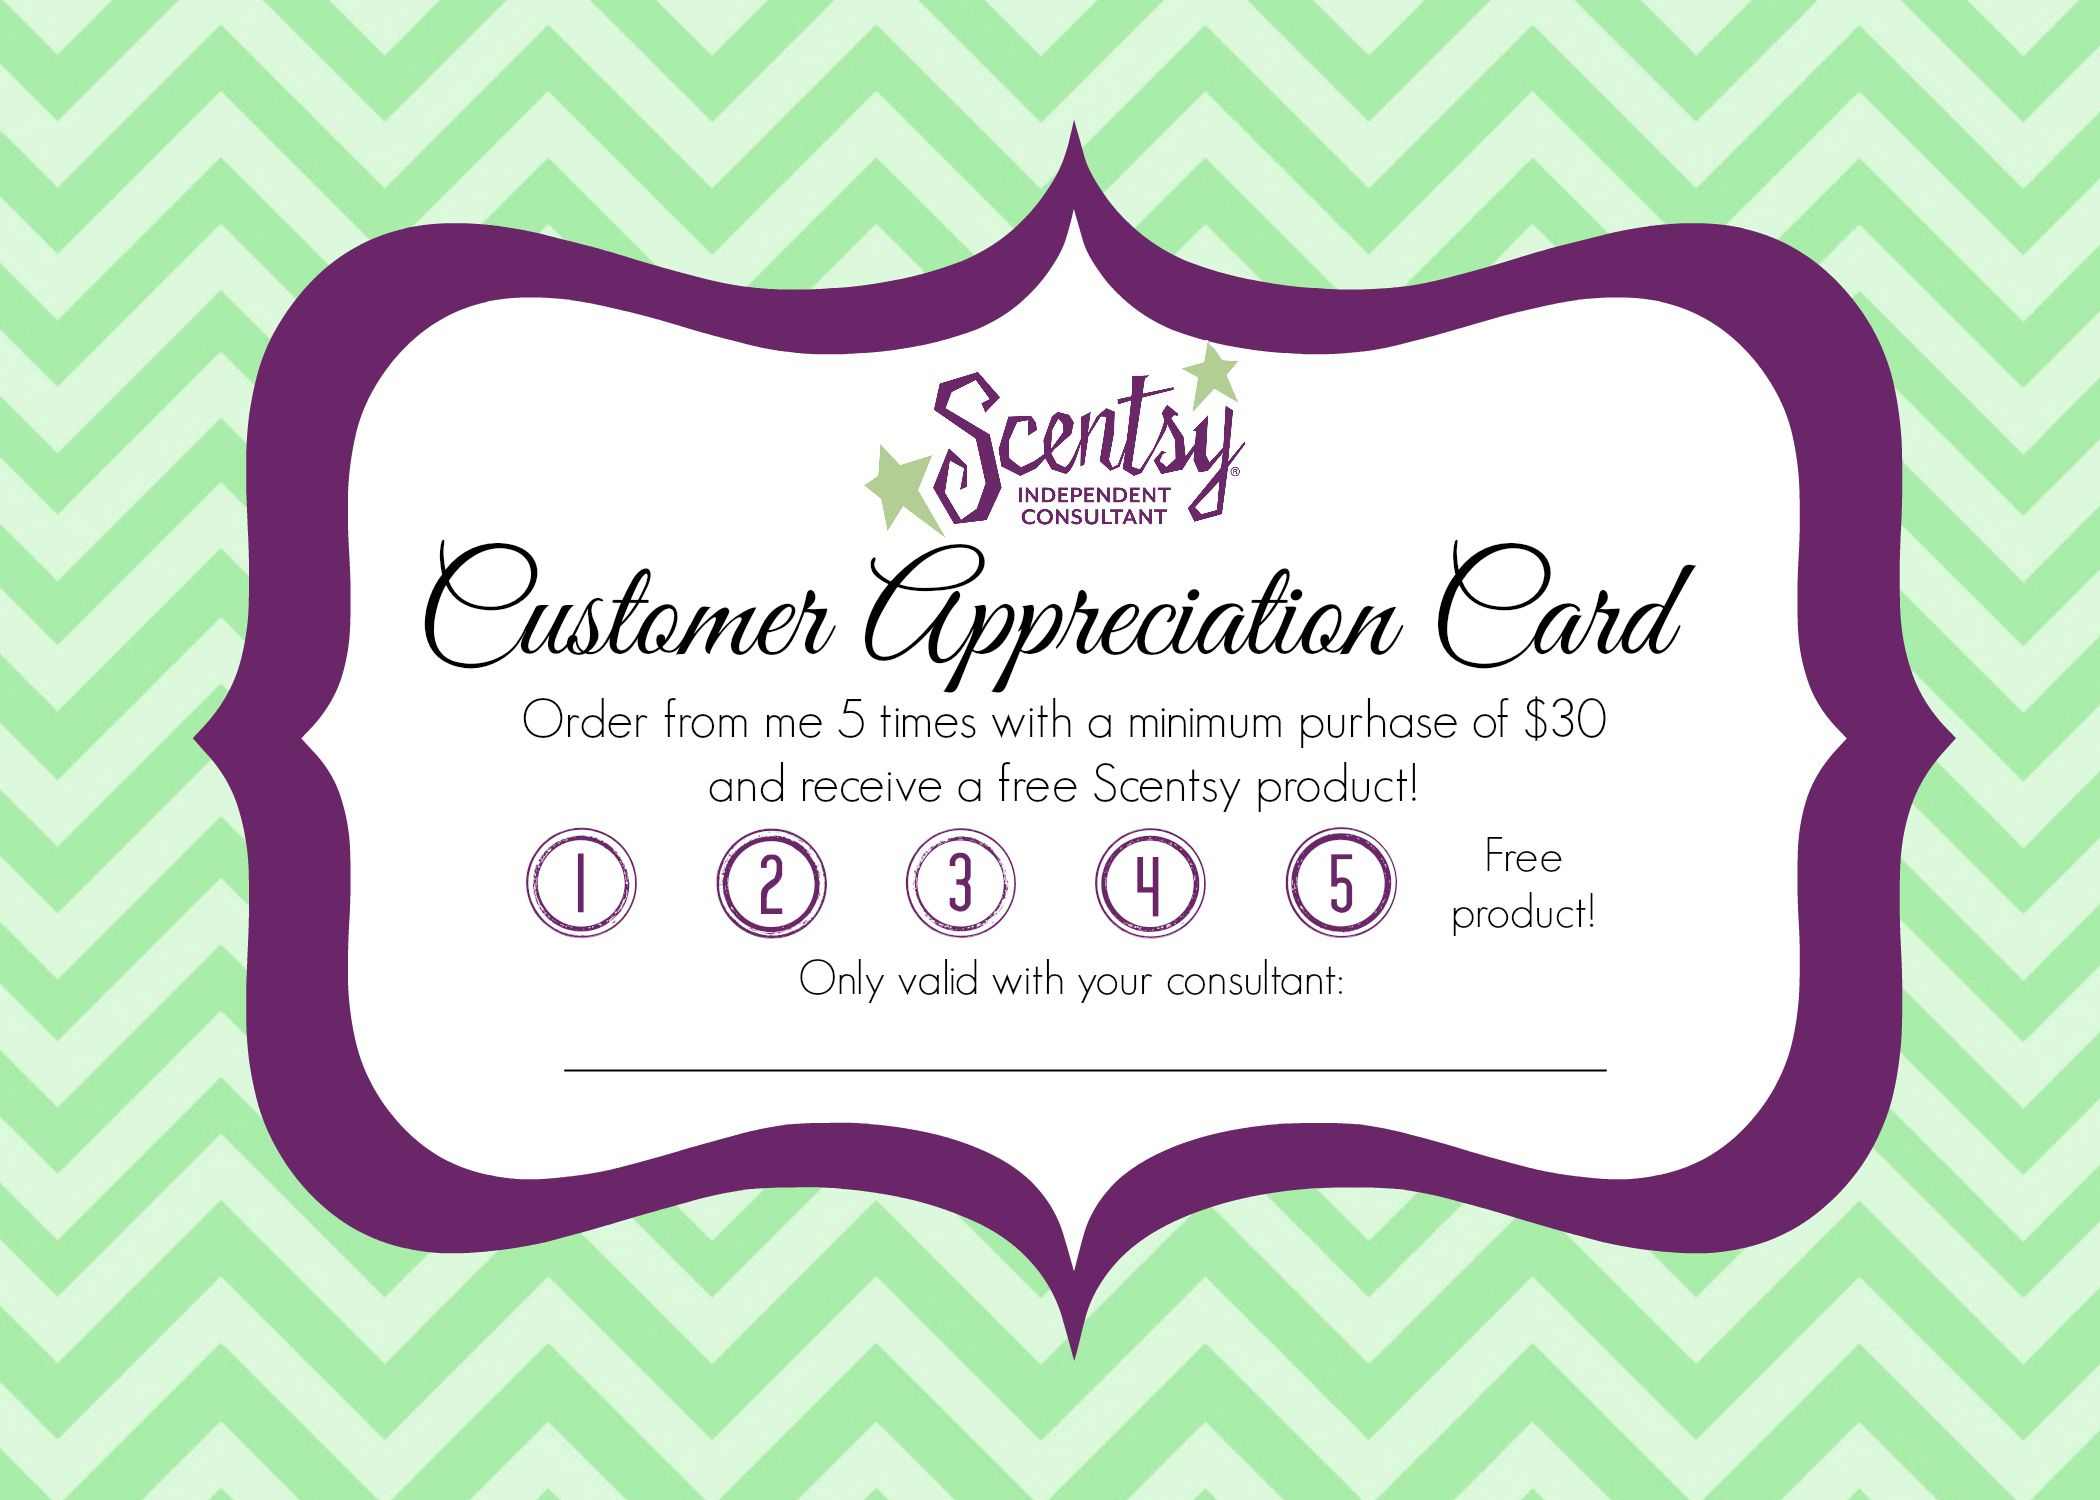 Customer Appreciation Card print on cardstock and fill